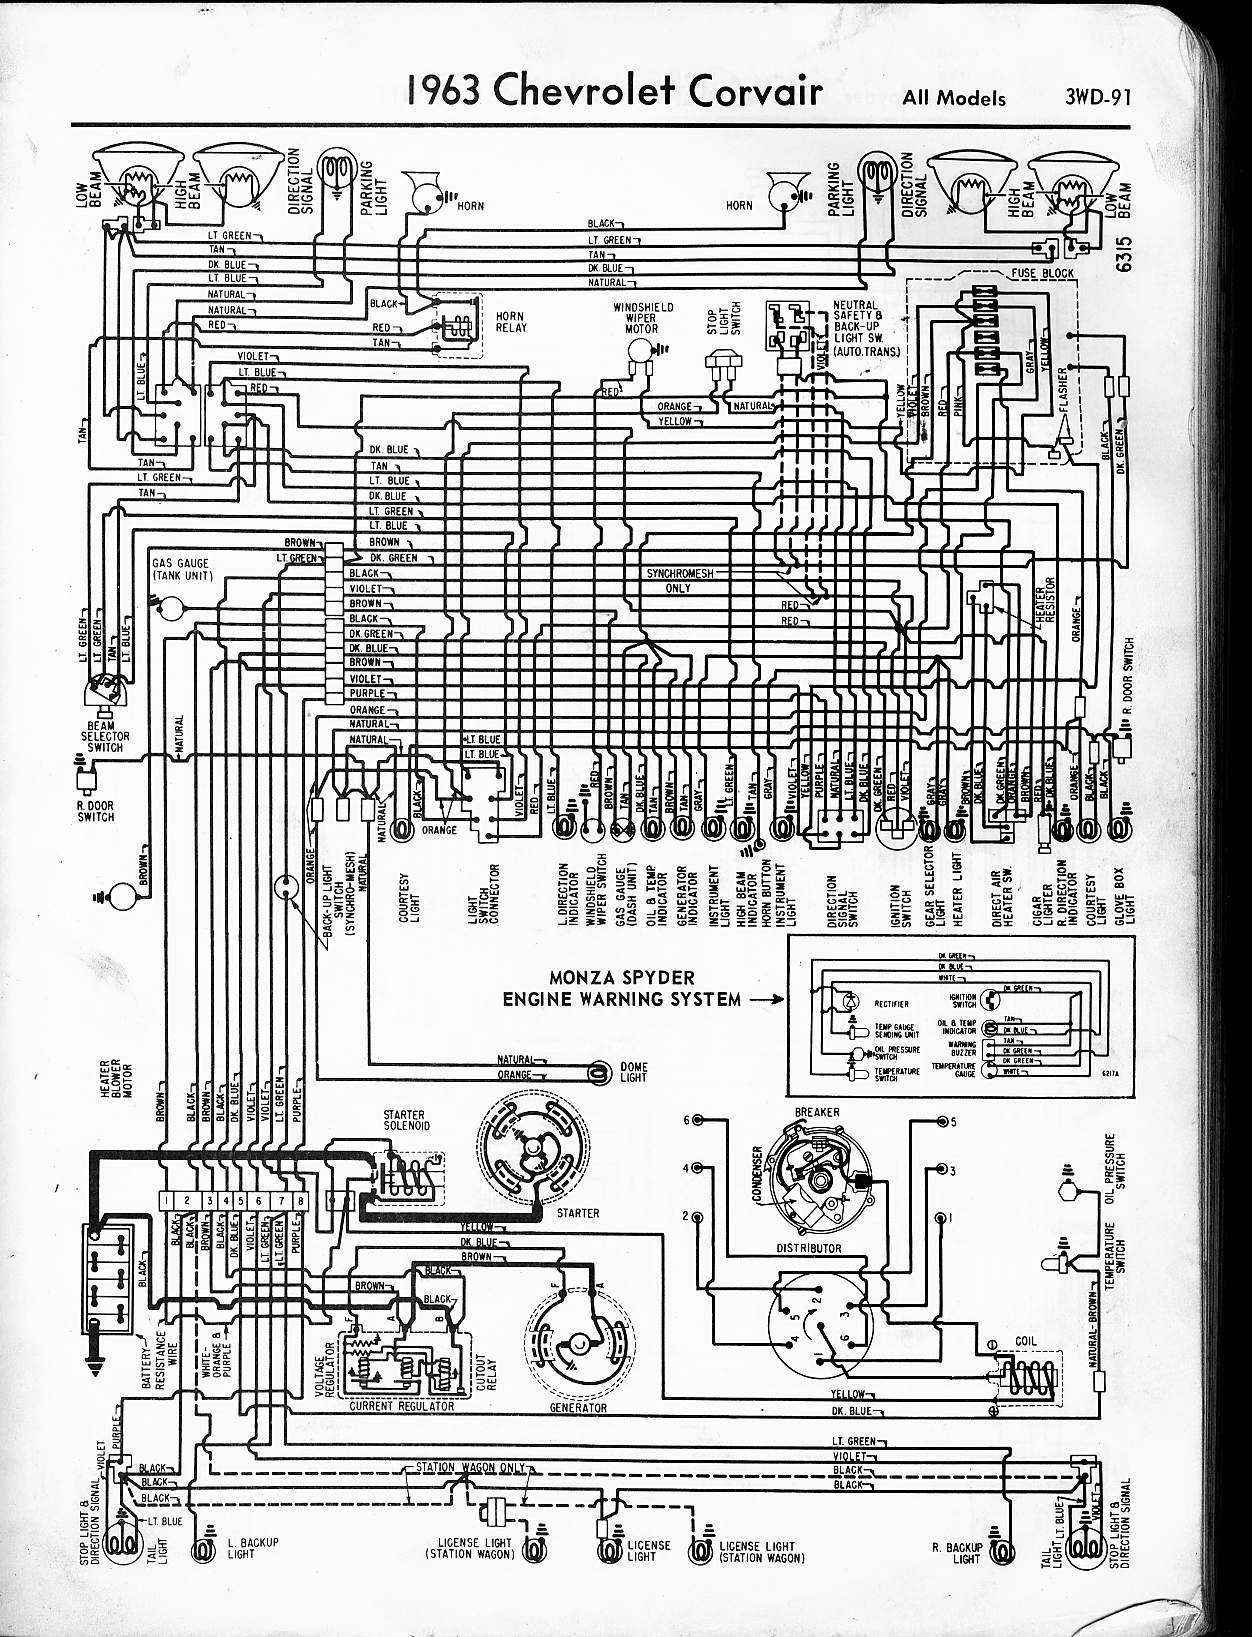 1960 corvette starter wiring diagram detailed schematics diagram rh  mrskindsclass com 1970 Corvette Wiring Diagram 1968 Corvette Engine Wiring  Harness